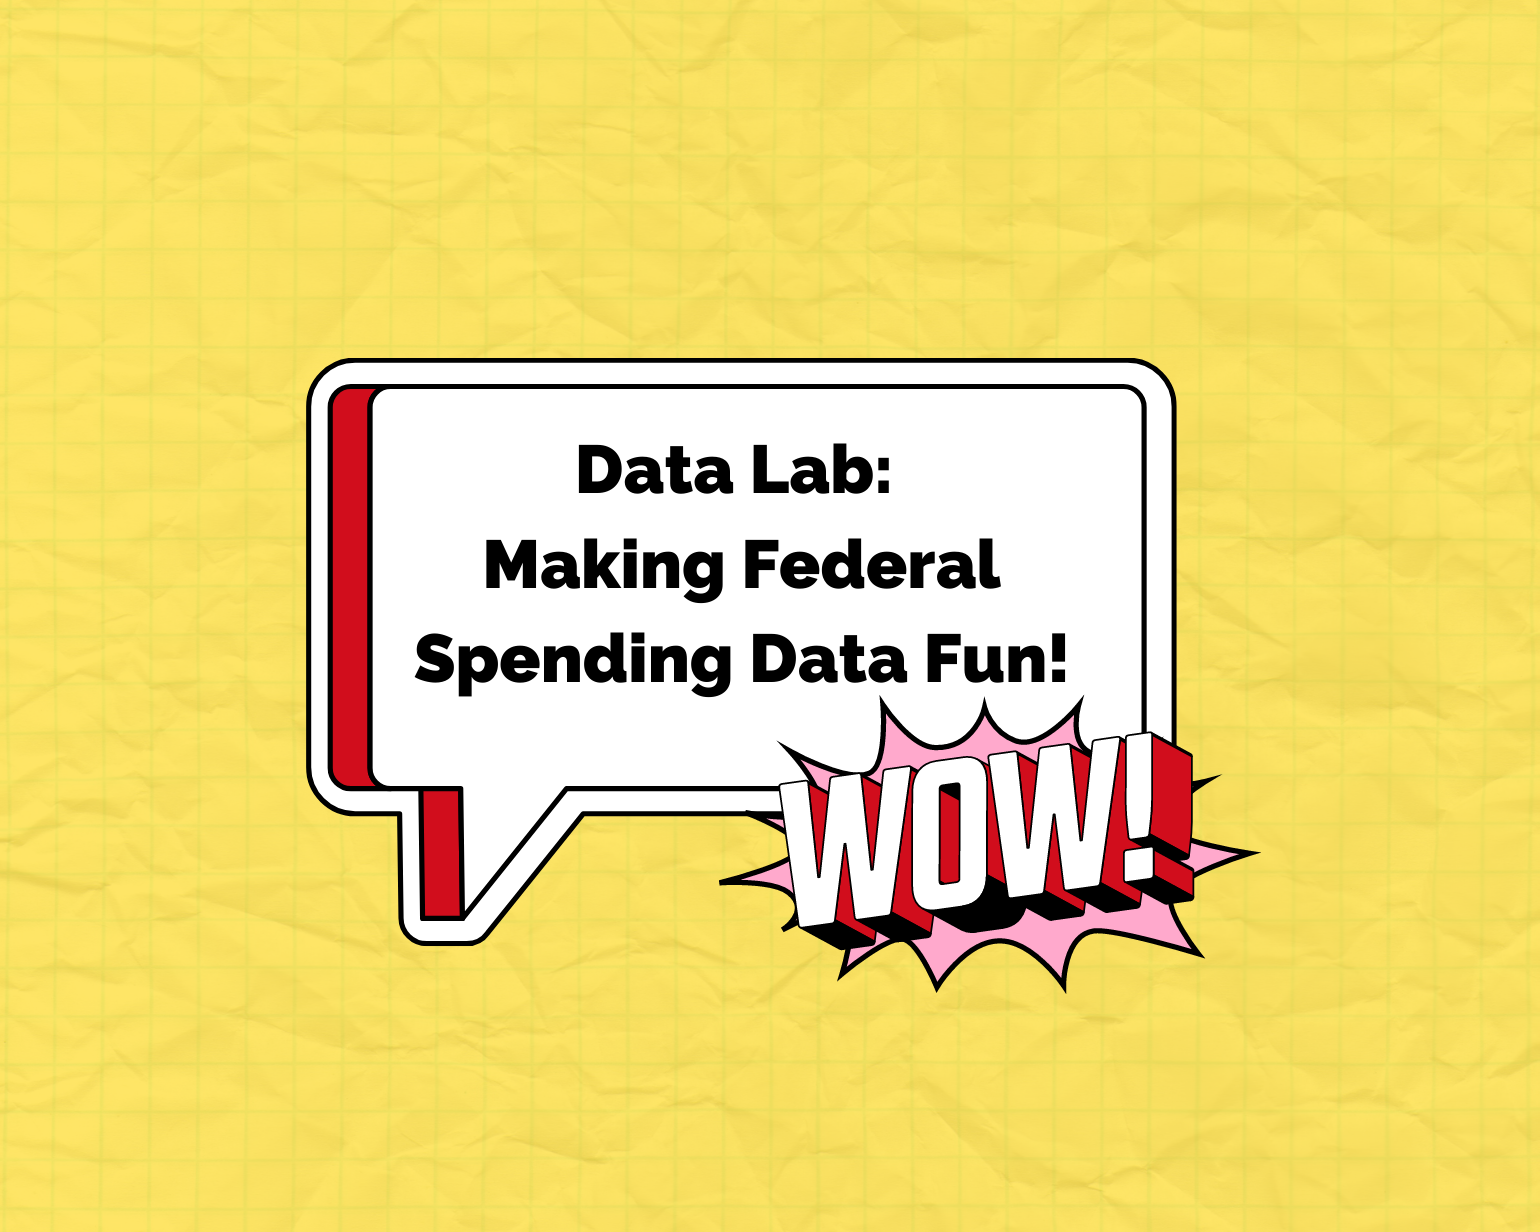 Speech bubble with Data Lab Making Federal Spending Data Fun and a sticker that says Wow.